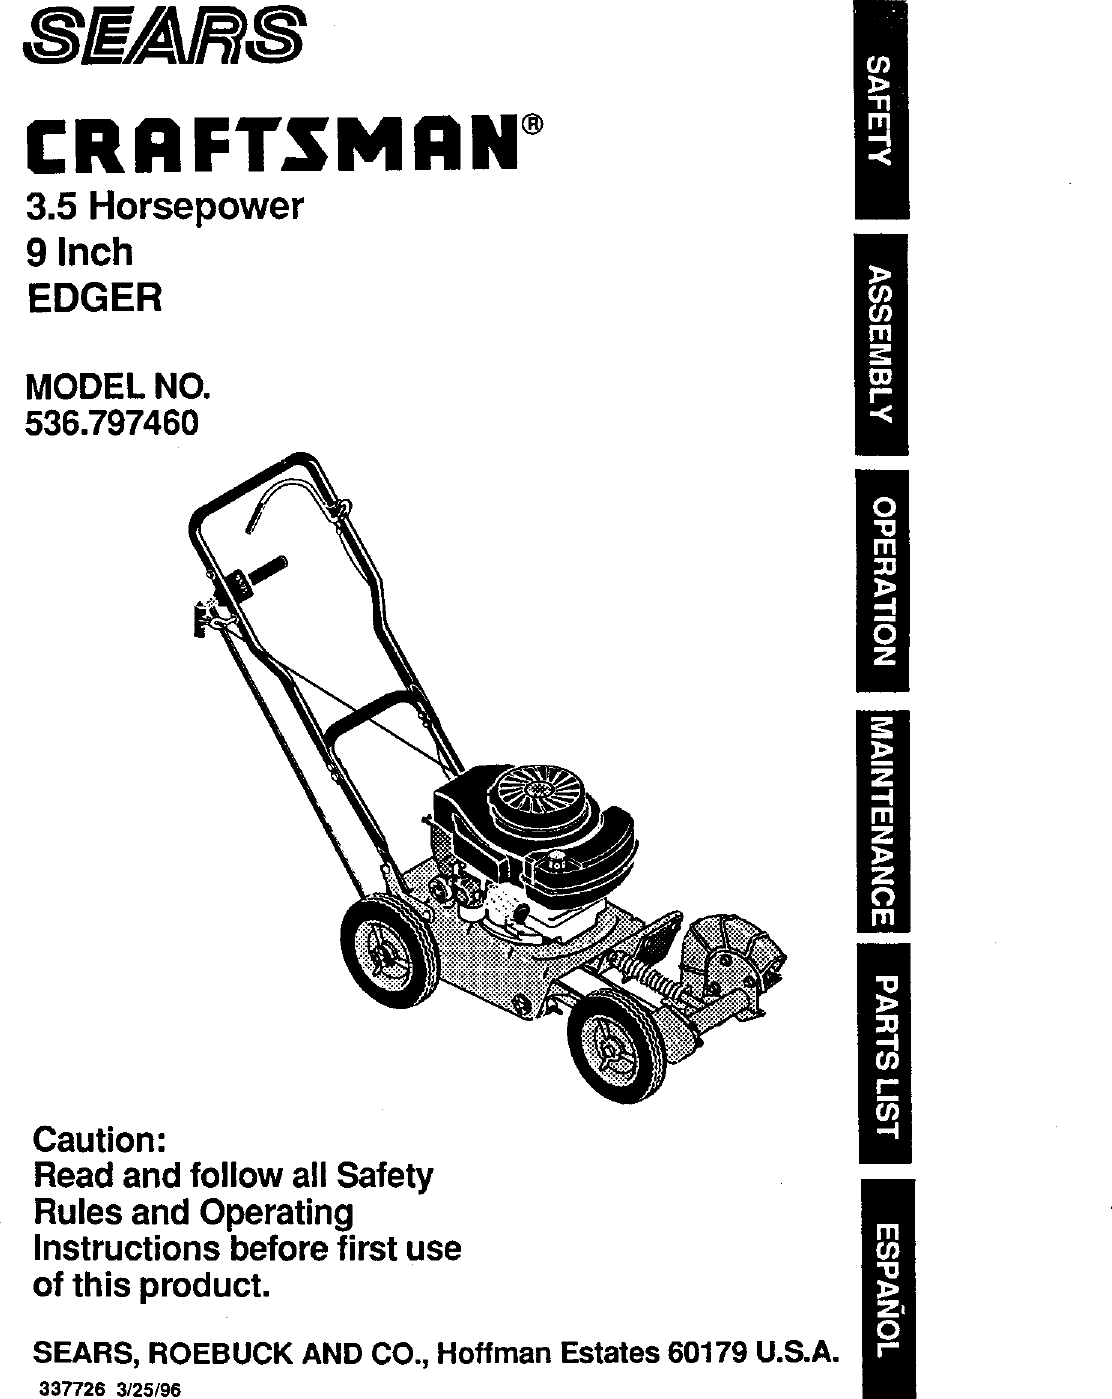 Craftsman 536797460 User Manual 3.5 HP 9 EDGER Manuals And